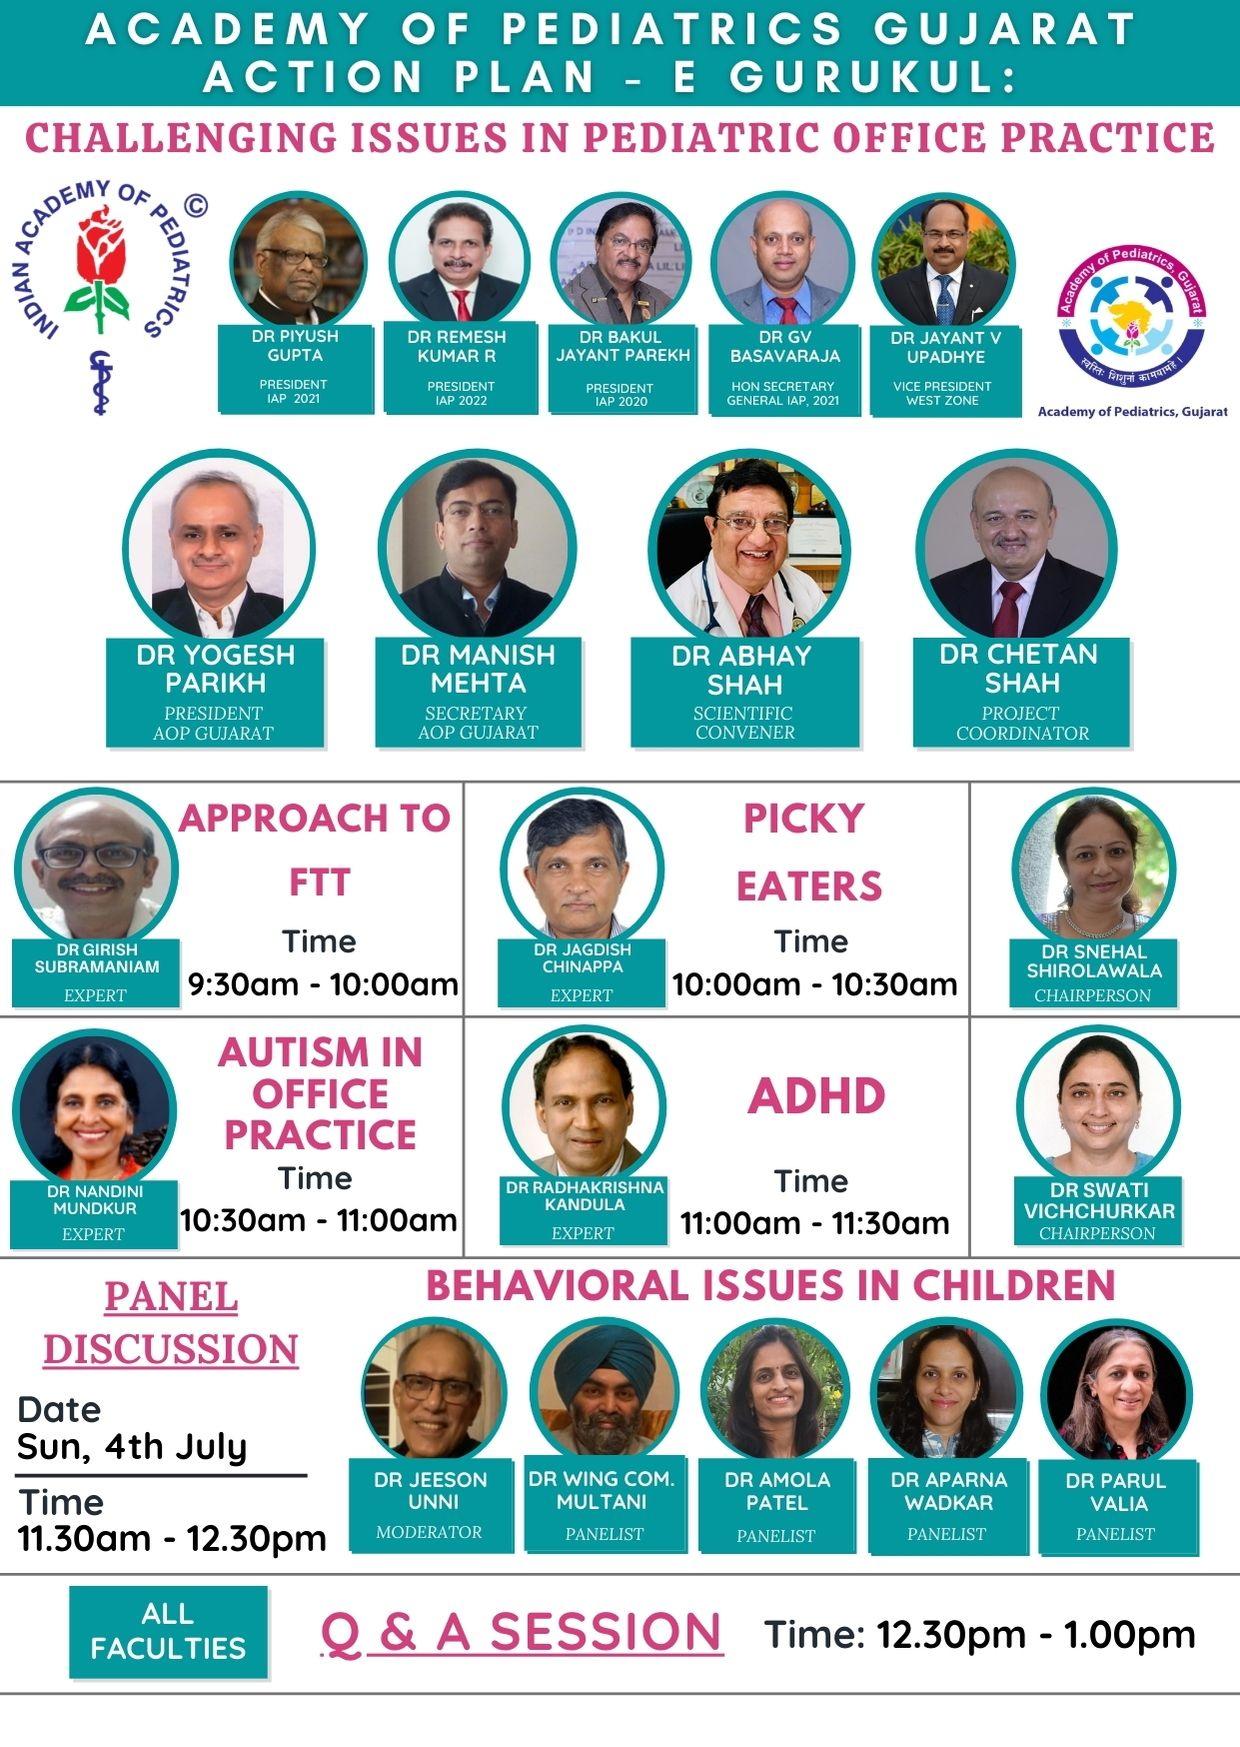 4th-July-AOP-Gujarat-Action-Plan-Challenging-Issues-in-Pediatric-Office-Practice